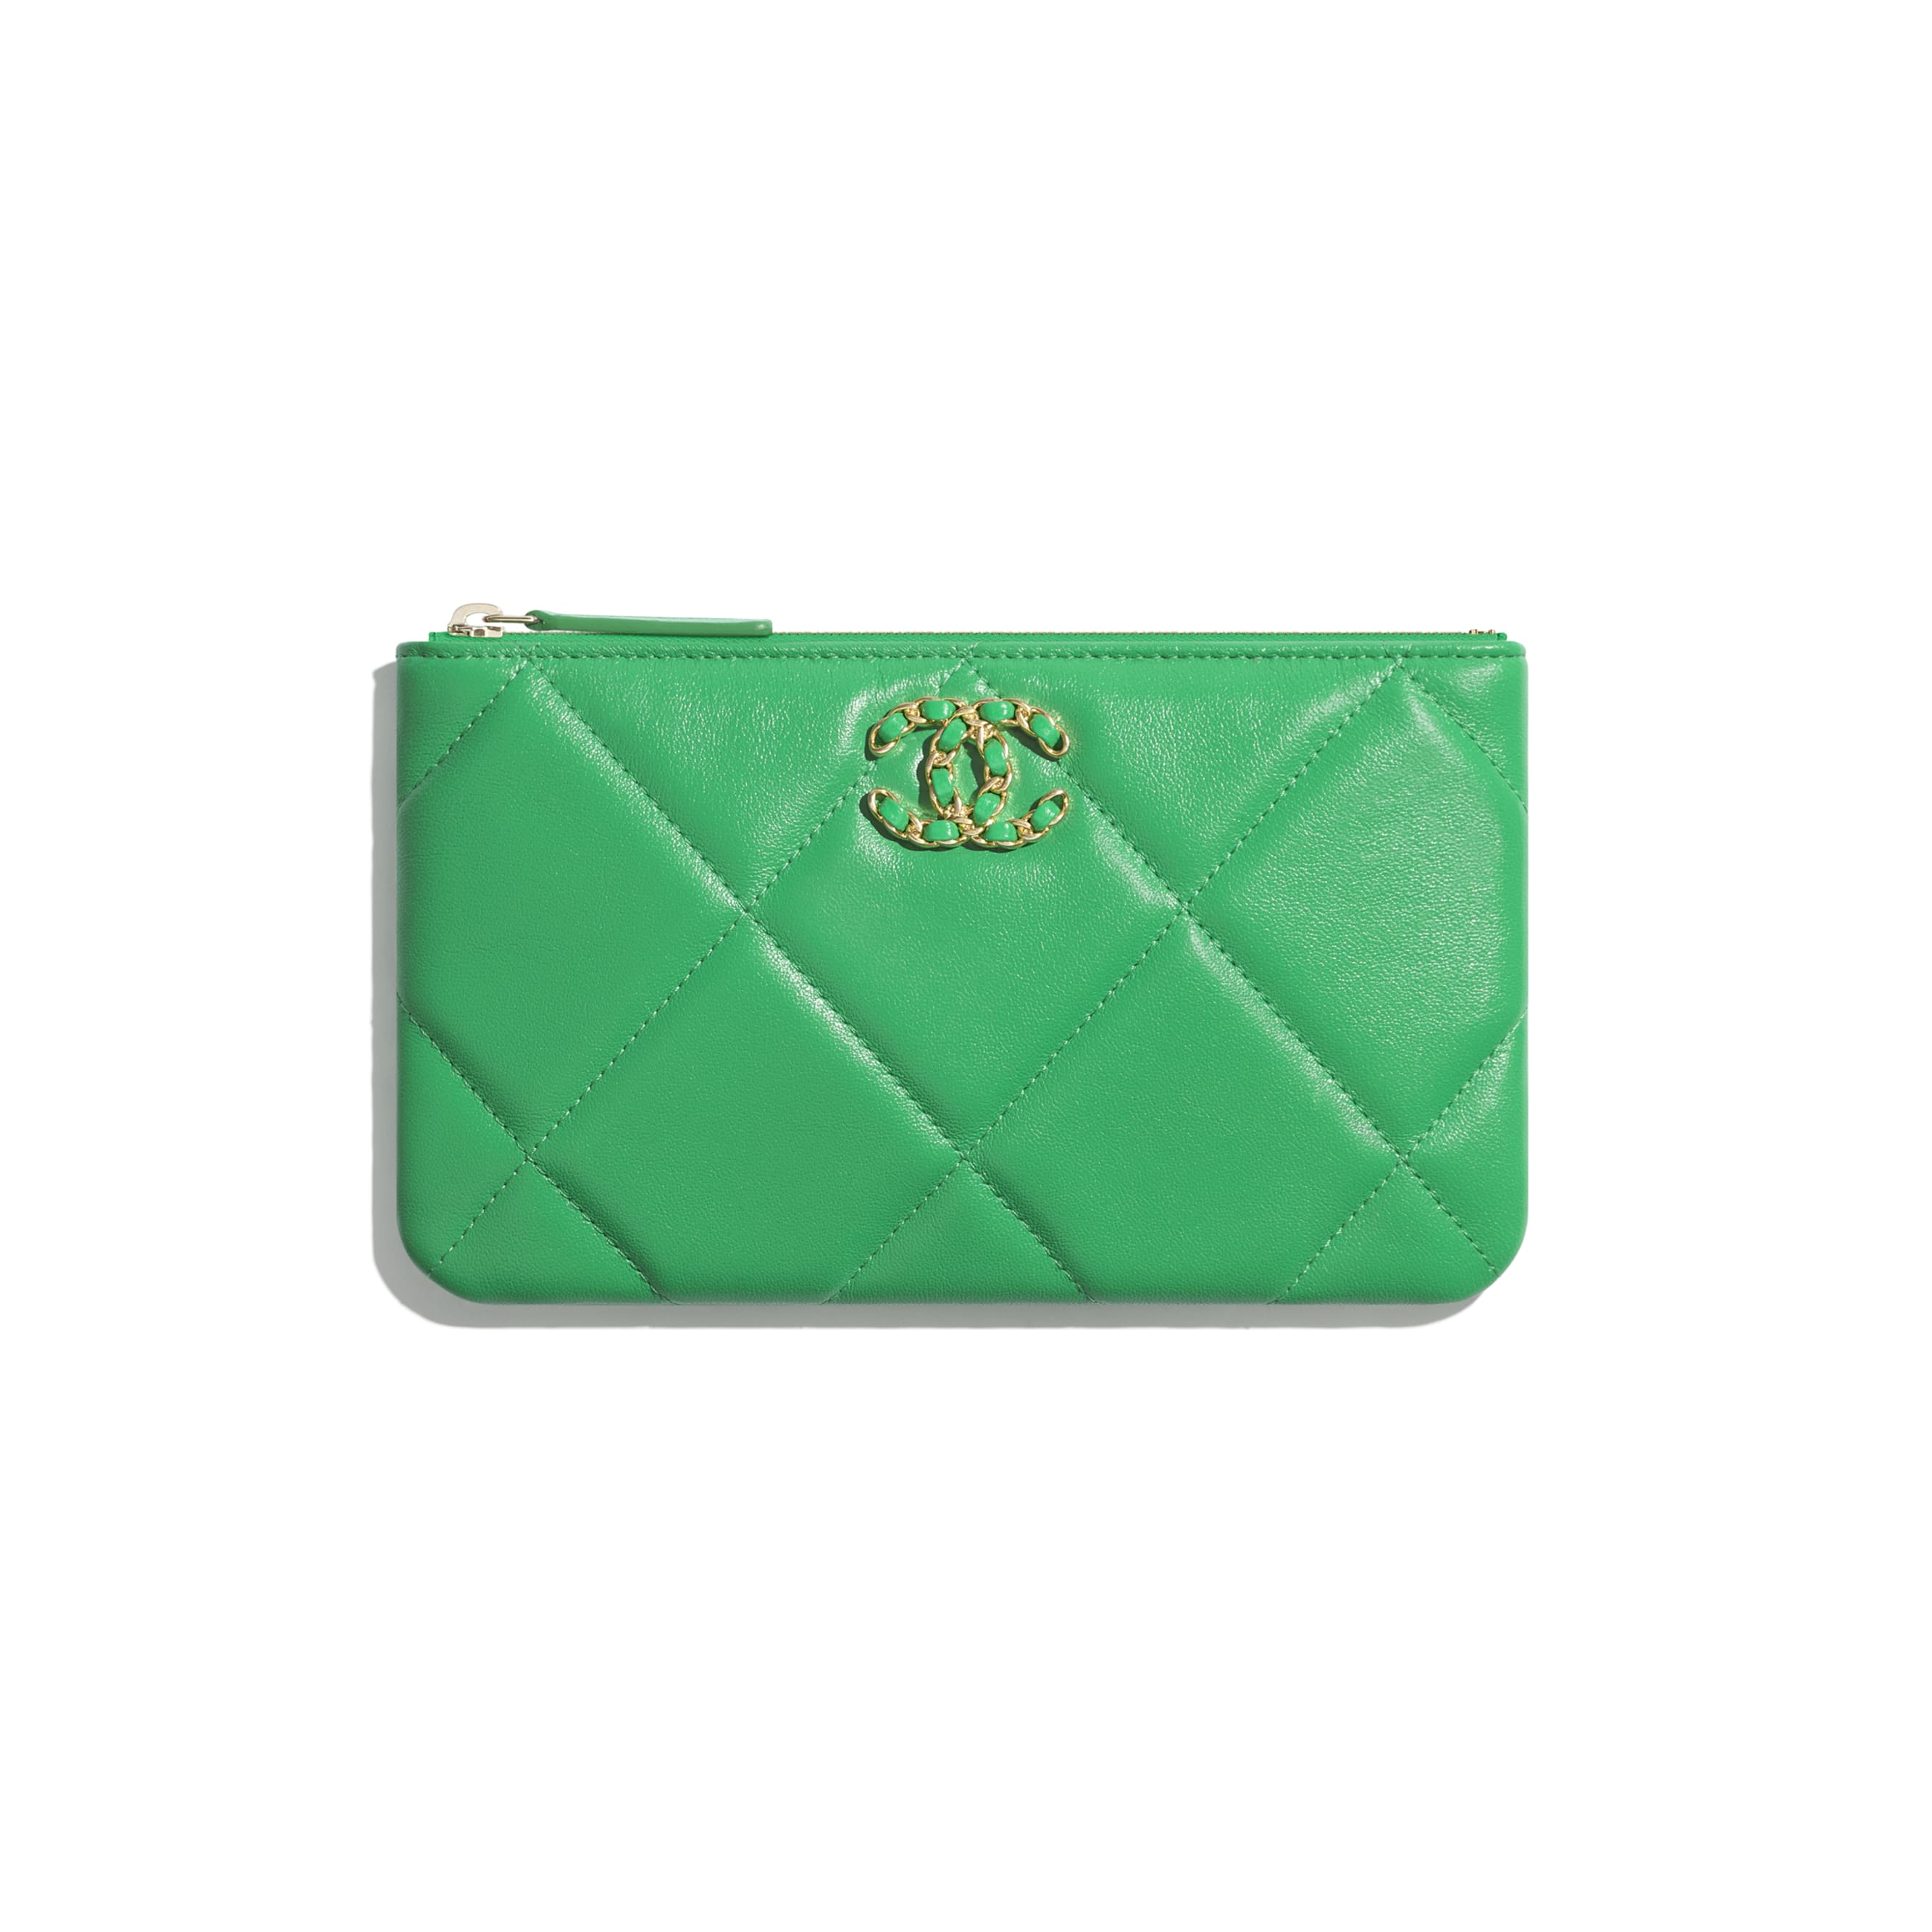 CHANEL 19 Small Pouch - Green - Lambskin, Gold-Tone, Silver-Tone & Ruthenium-Finish Metal - Default view - see standard sized version